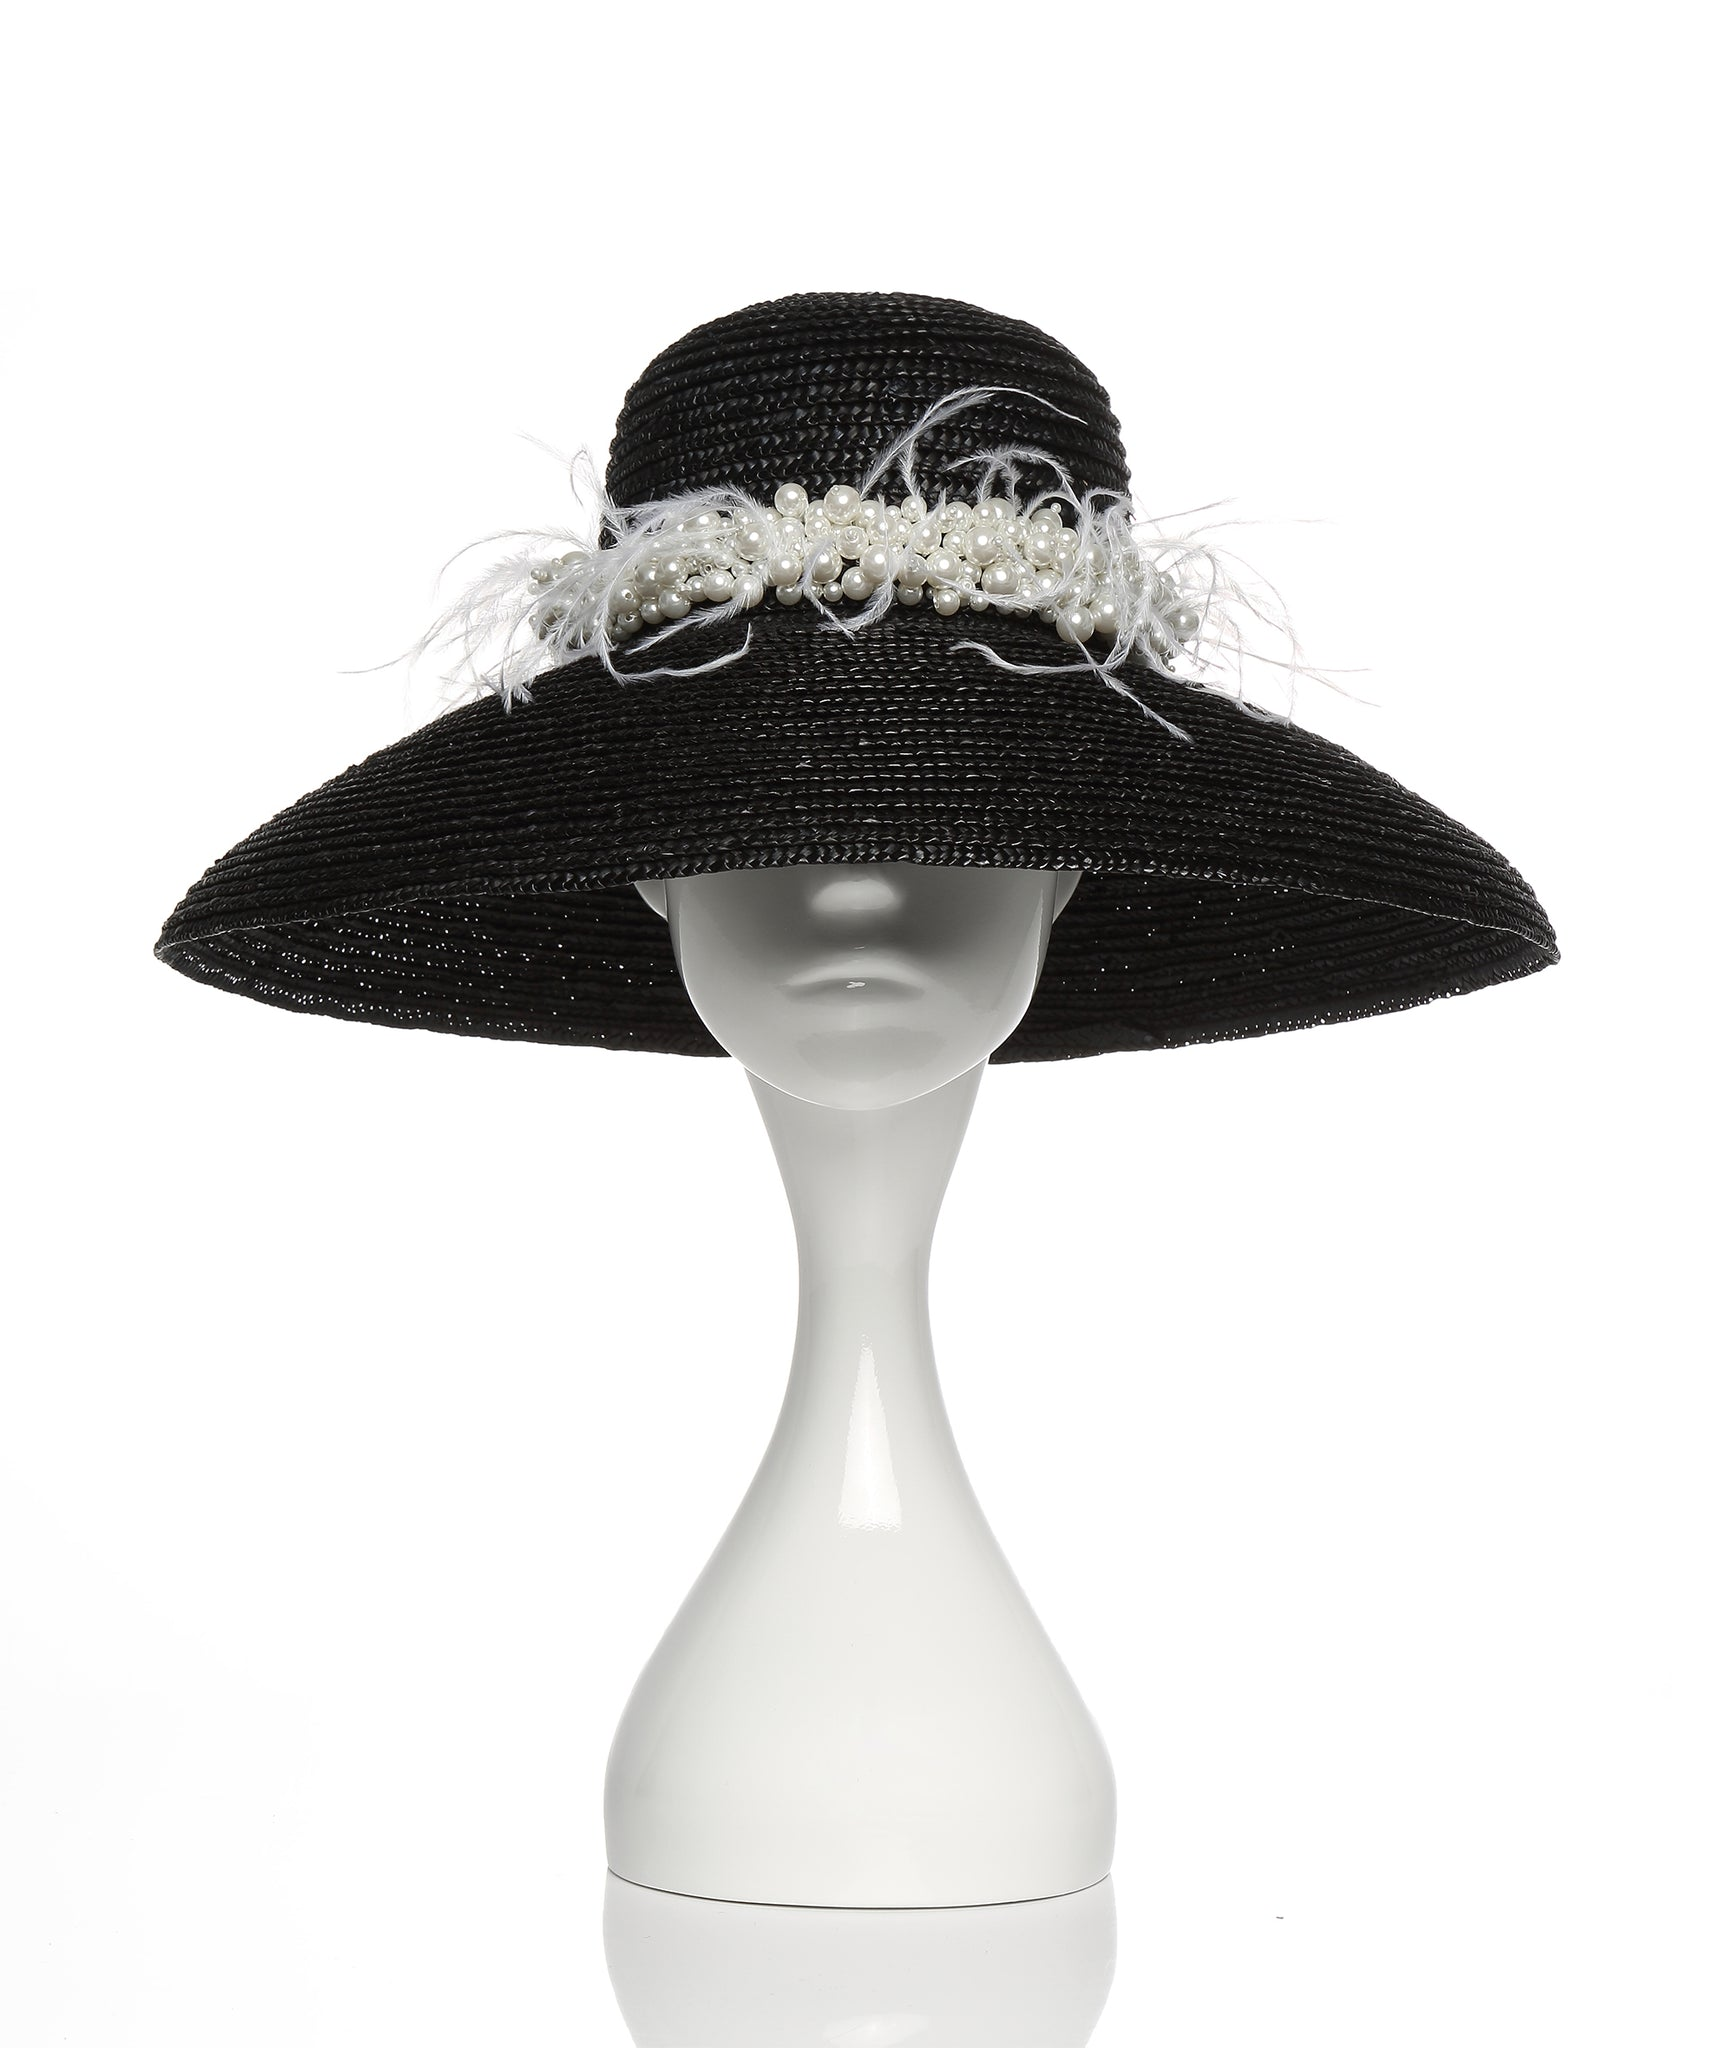 Black Straw Hat with Pearls and Ostrich Feathers